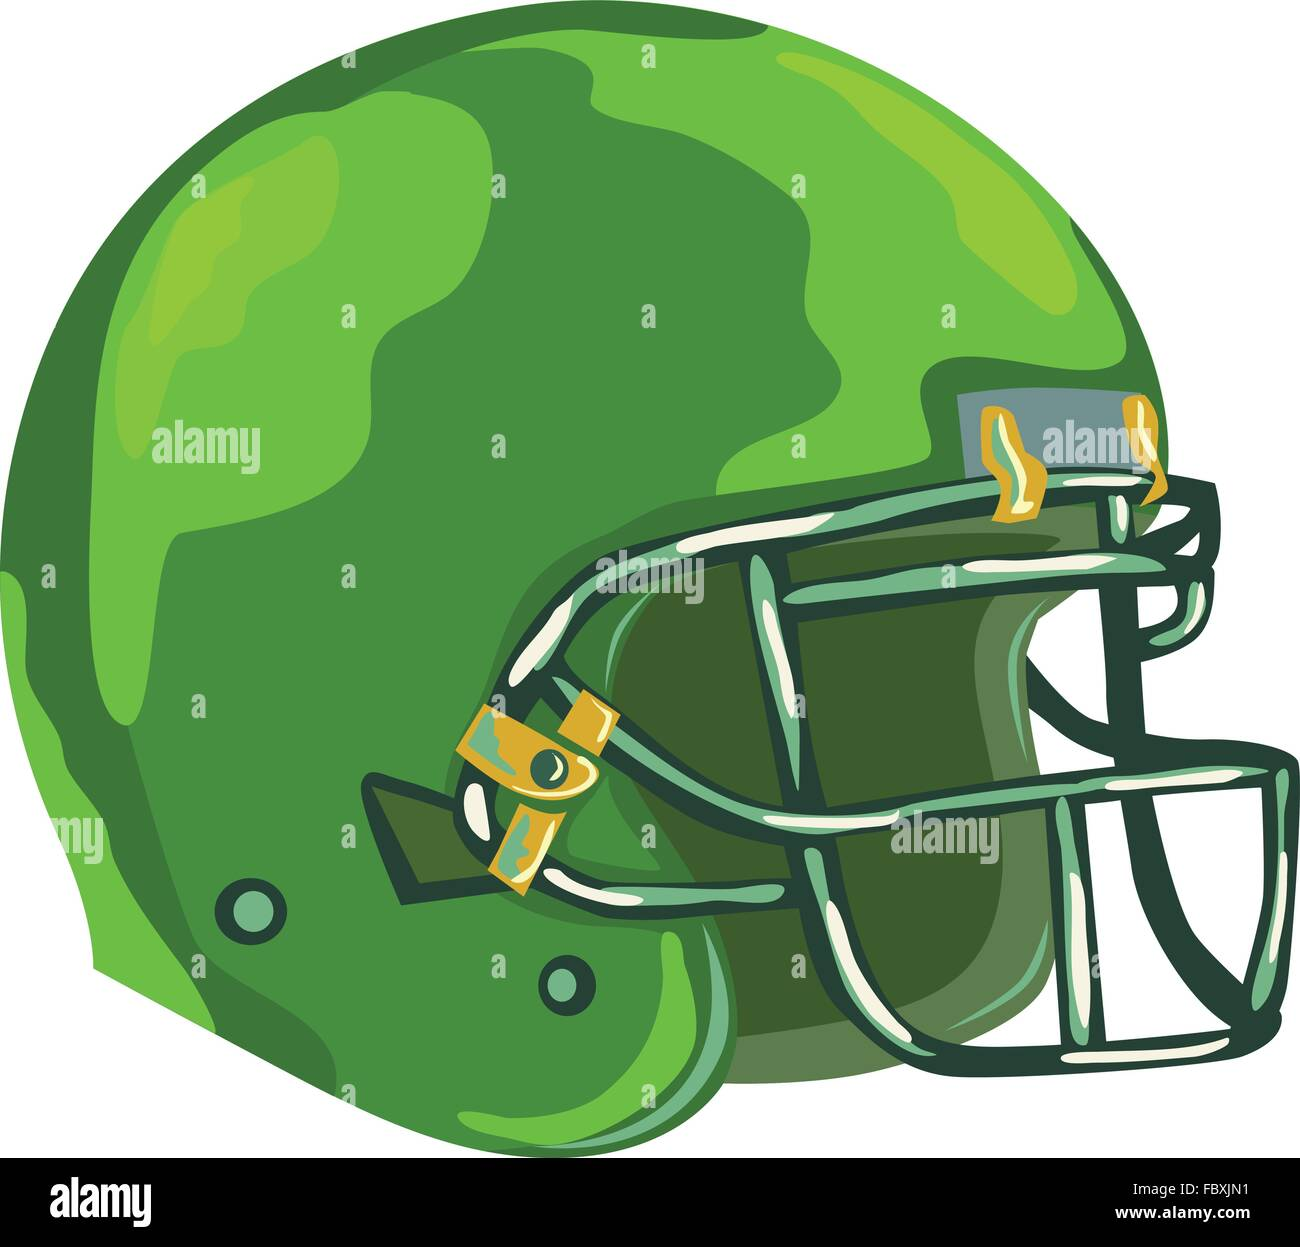 WPA style illustration of an american football green helmet headgear viewed from side set on isolated white background - Stock Vector